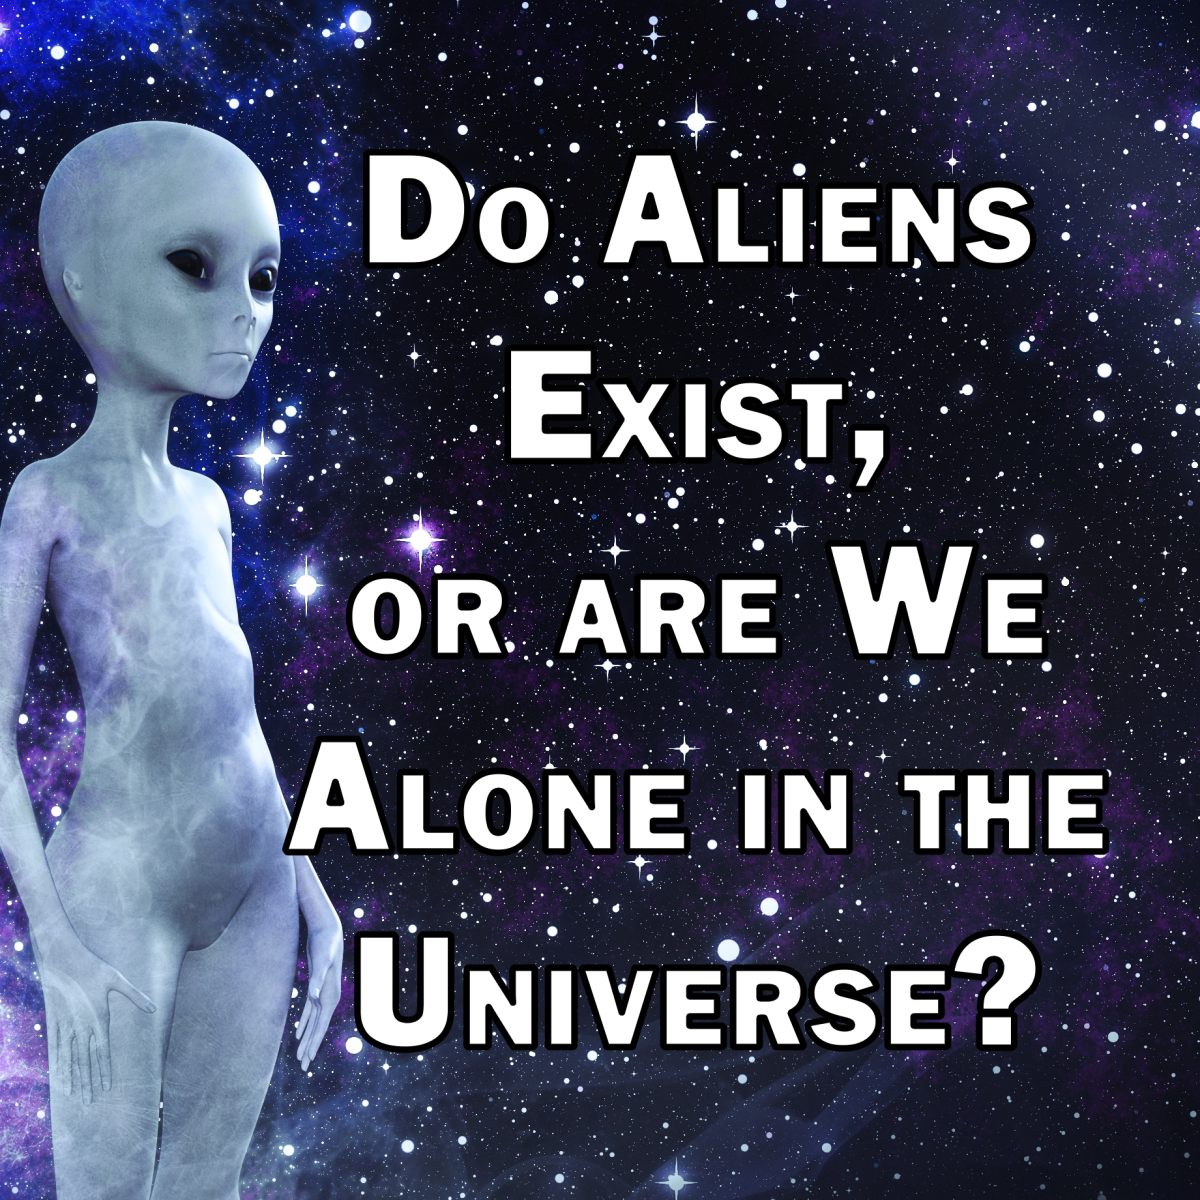 Do Aliens Exist, or Are We Alone in the Universe?